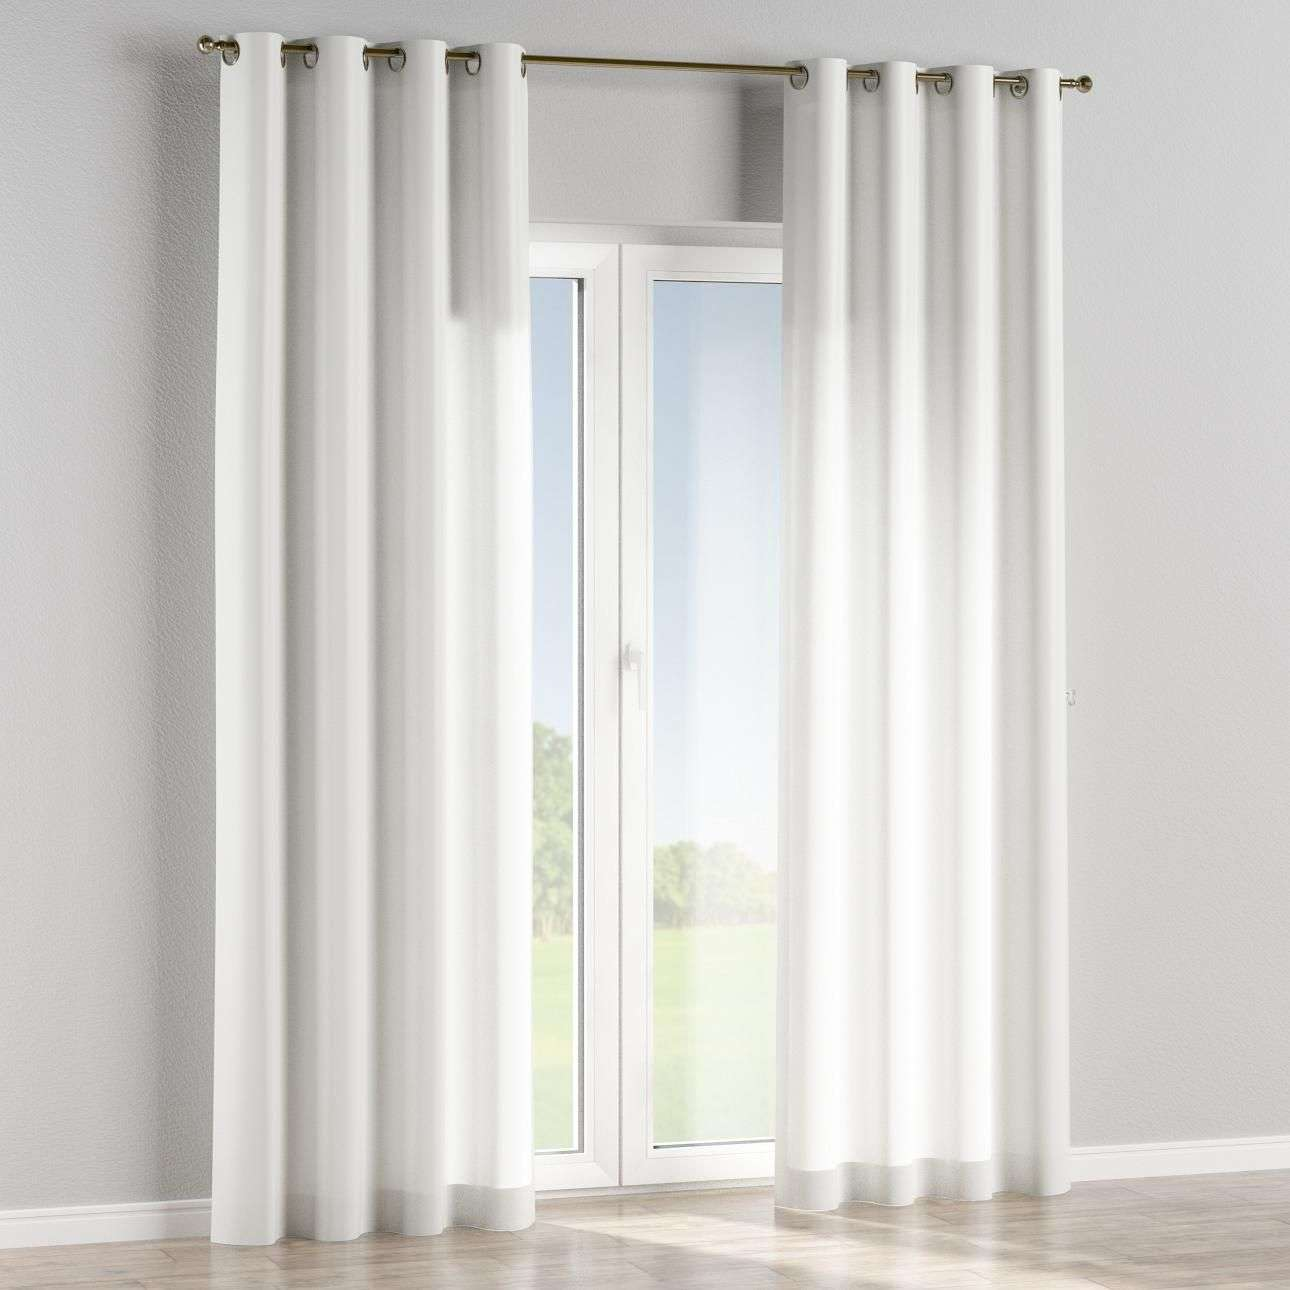 Eyelet curtains in collection Cardiff, fabric: 136-21